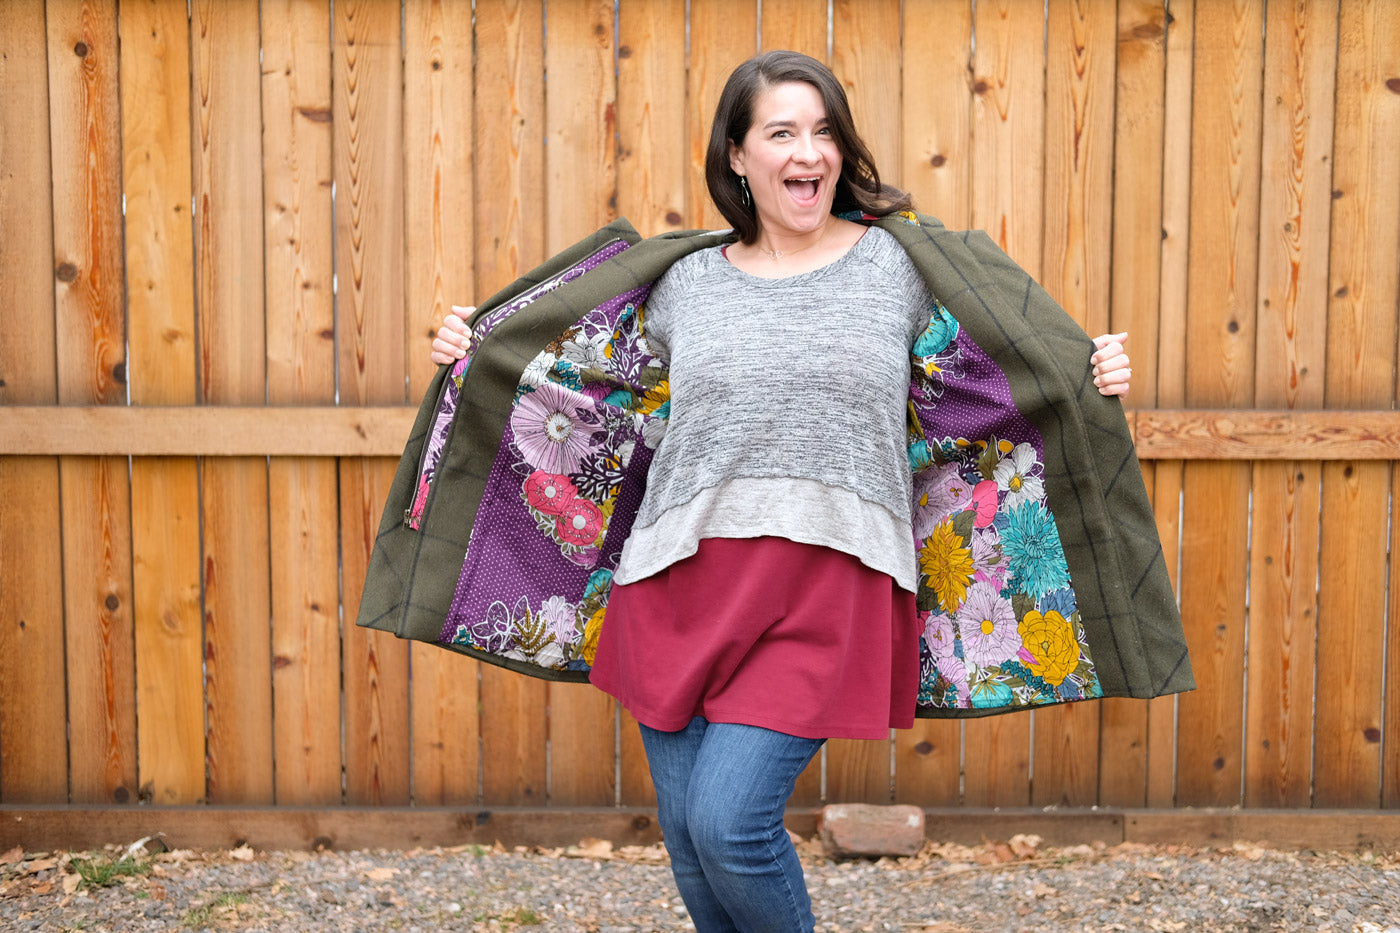 Tiffani showing off her surprise fun lining in her Duffle Coat